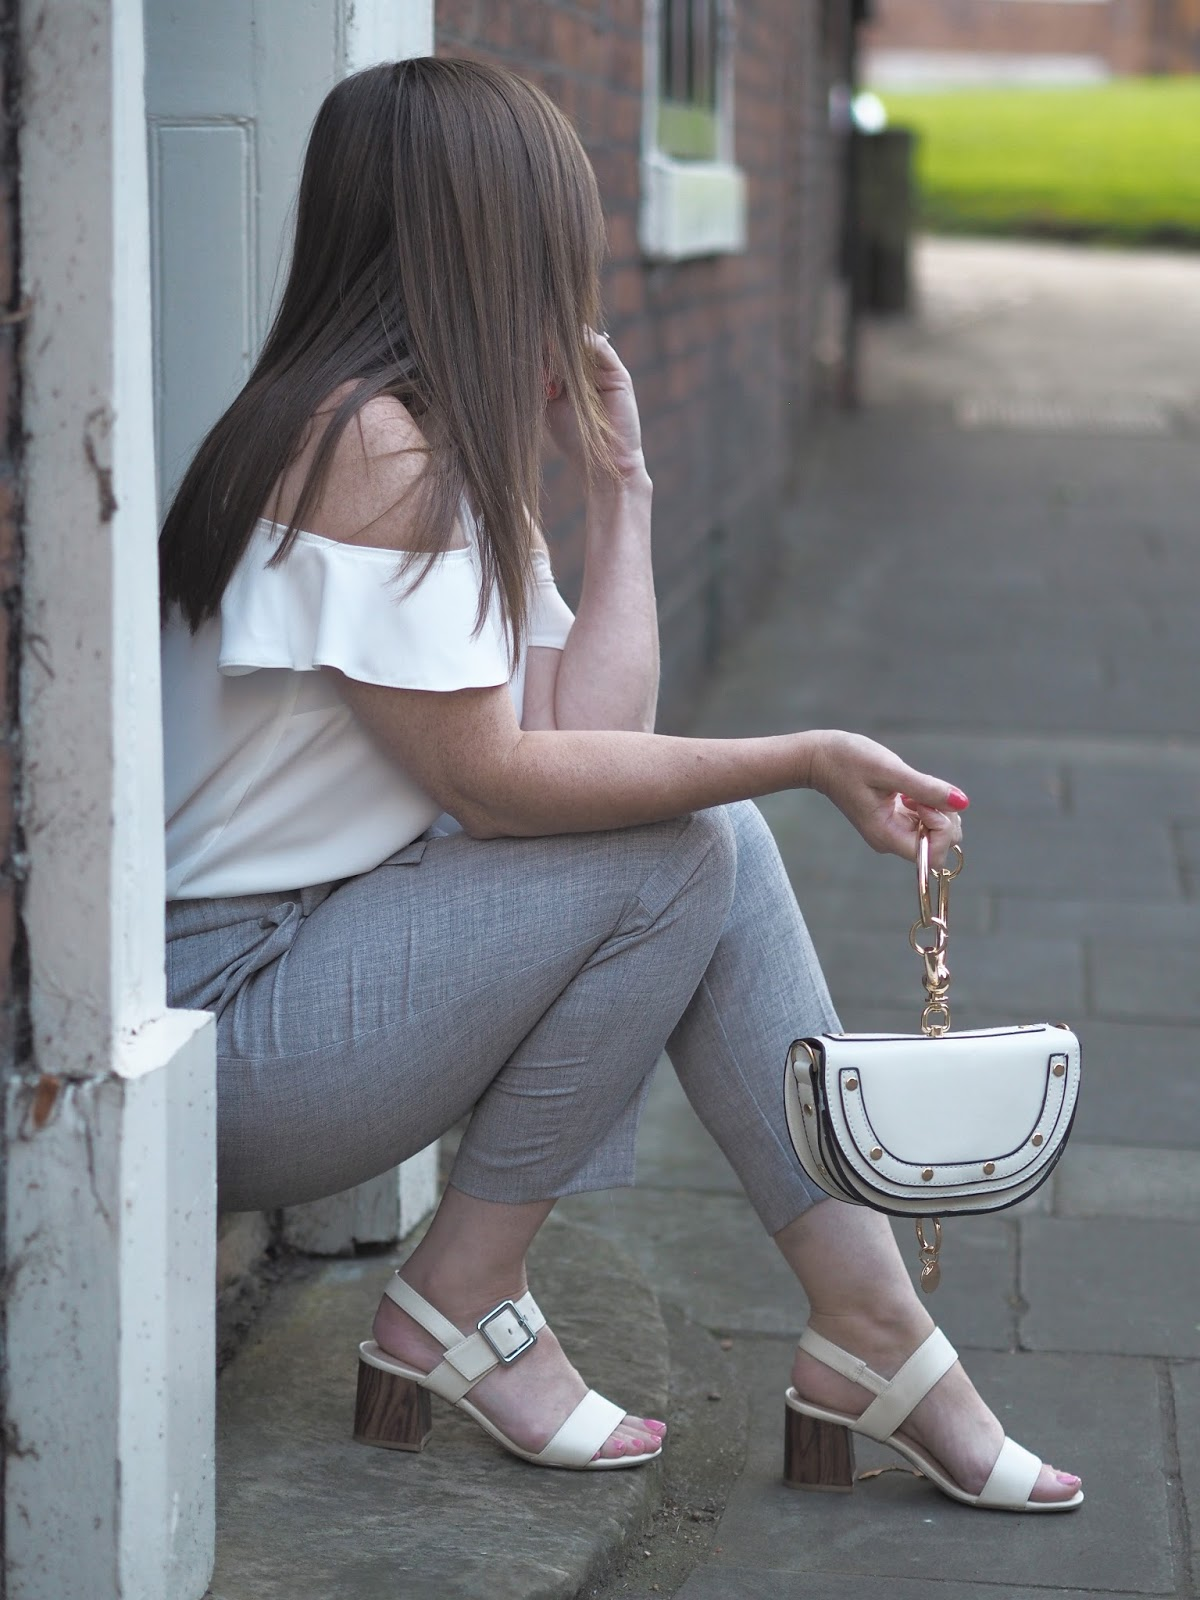 Shein \ designer dupes \ fashion \ style \ trend \ Chloé Nile \  grey cropped trousers \ handbag \ Priceless Life of Mine \ over 40 lifestyle blog